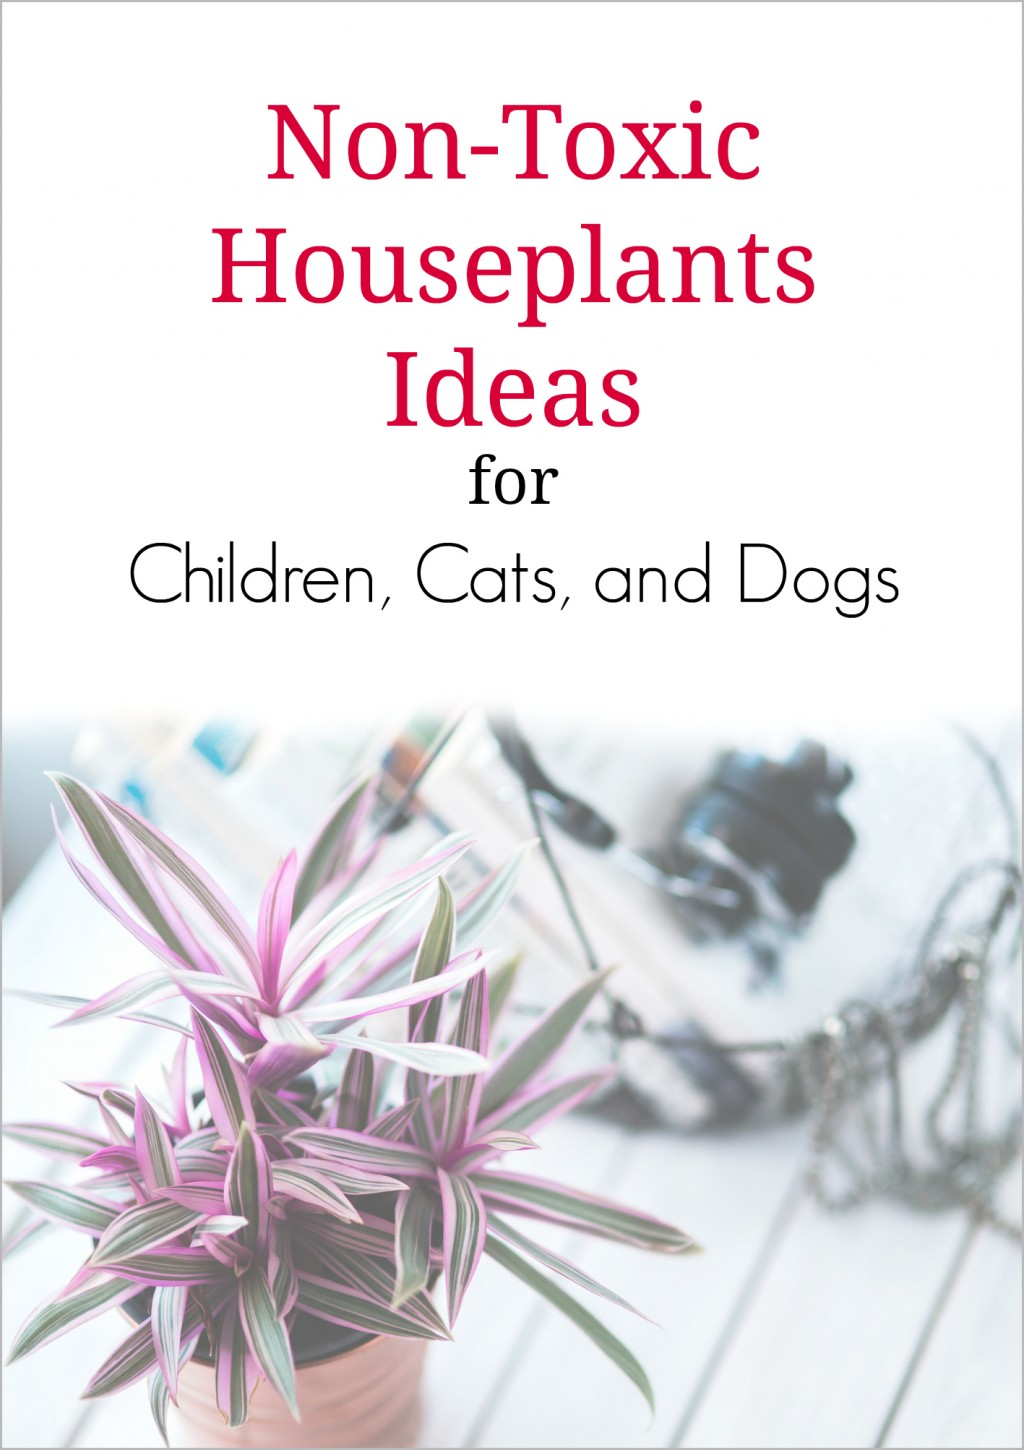 Non toxic house plants for children cats and dogs Houseplants not toxic to cats